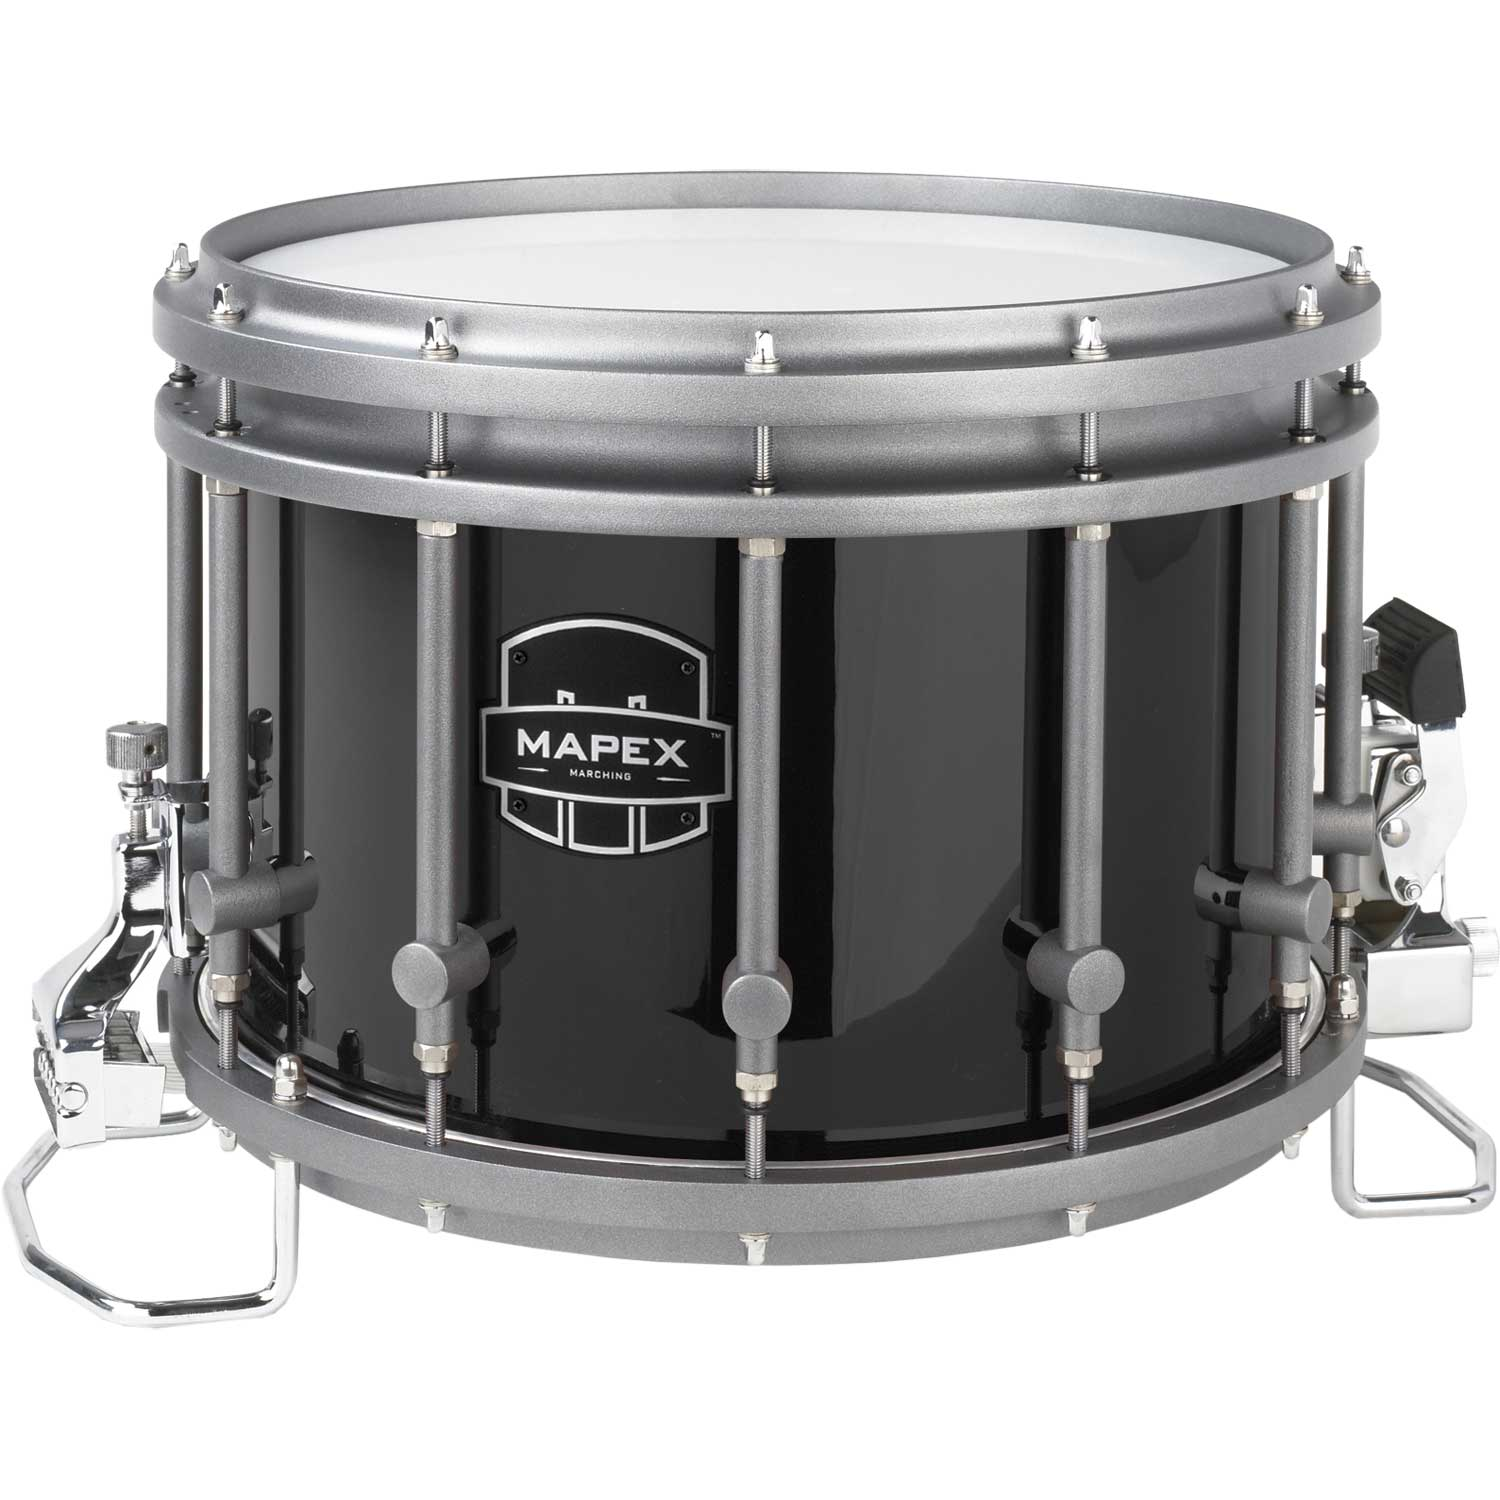 "Mapex 14"" (Diameter) x 10"" (Deep) Quantum Agility Marching Snare Drum in Gloss Black"